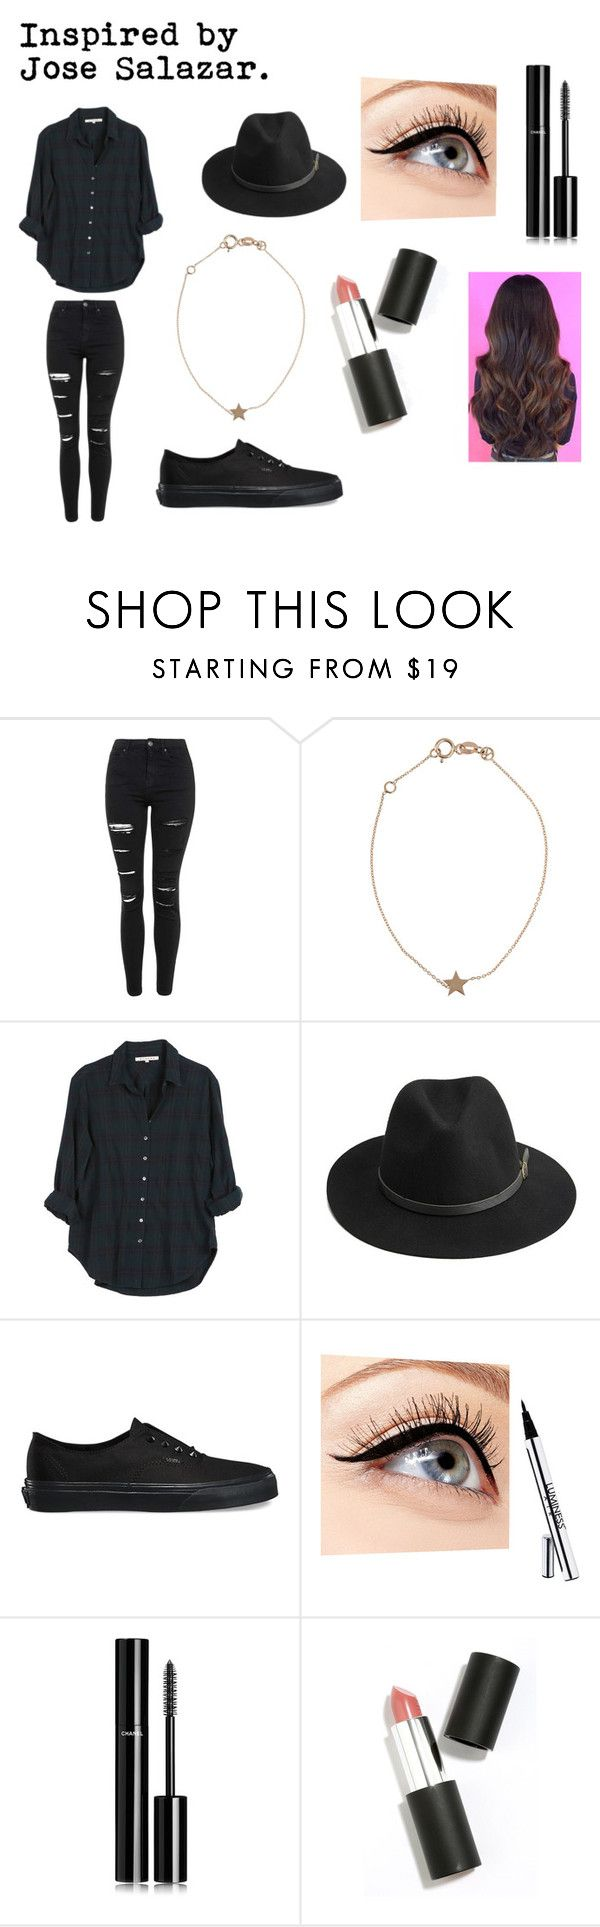 """Inspirado en pepeproblemas"" by marianasdavila on Polyvore featuring Topshop, Kismet, Xirena, BeckSöndergaard, Vans, Luminess Air, Chanel and Sigma Beauty"